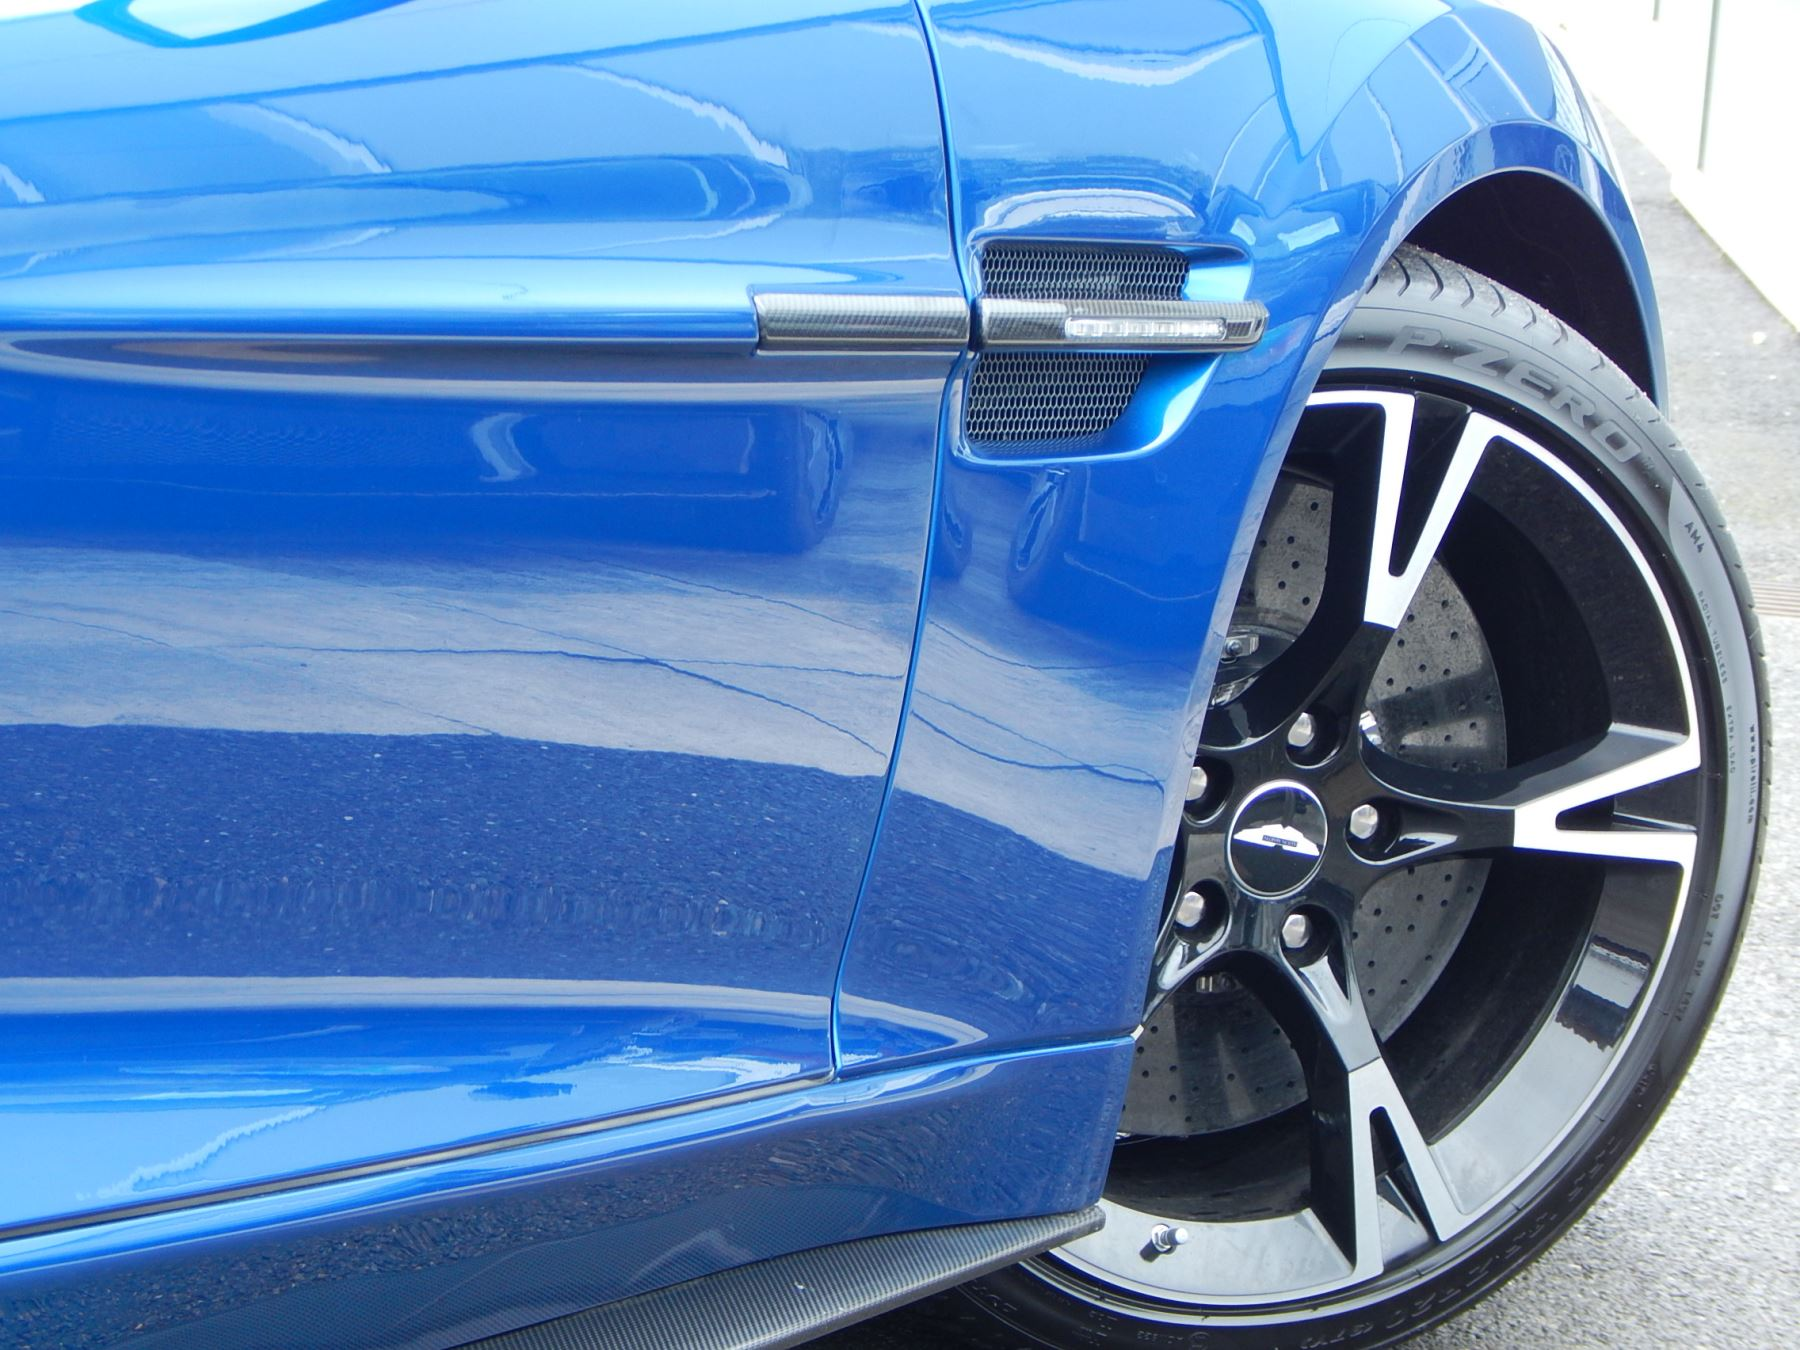 Aston Martin Vanquish V12 [595] S 2+2 2dr Touchtronic image 23